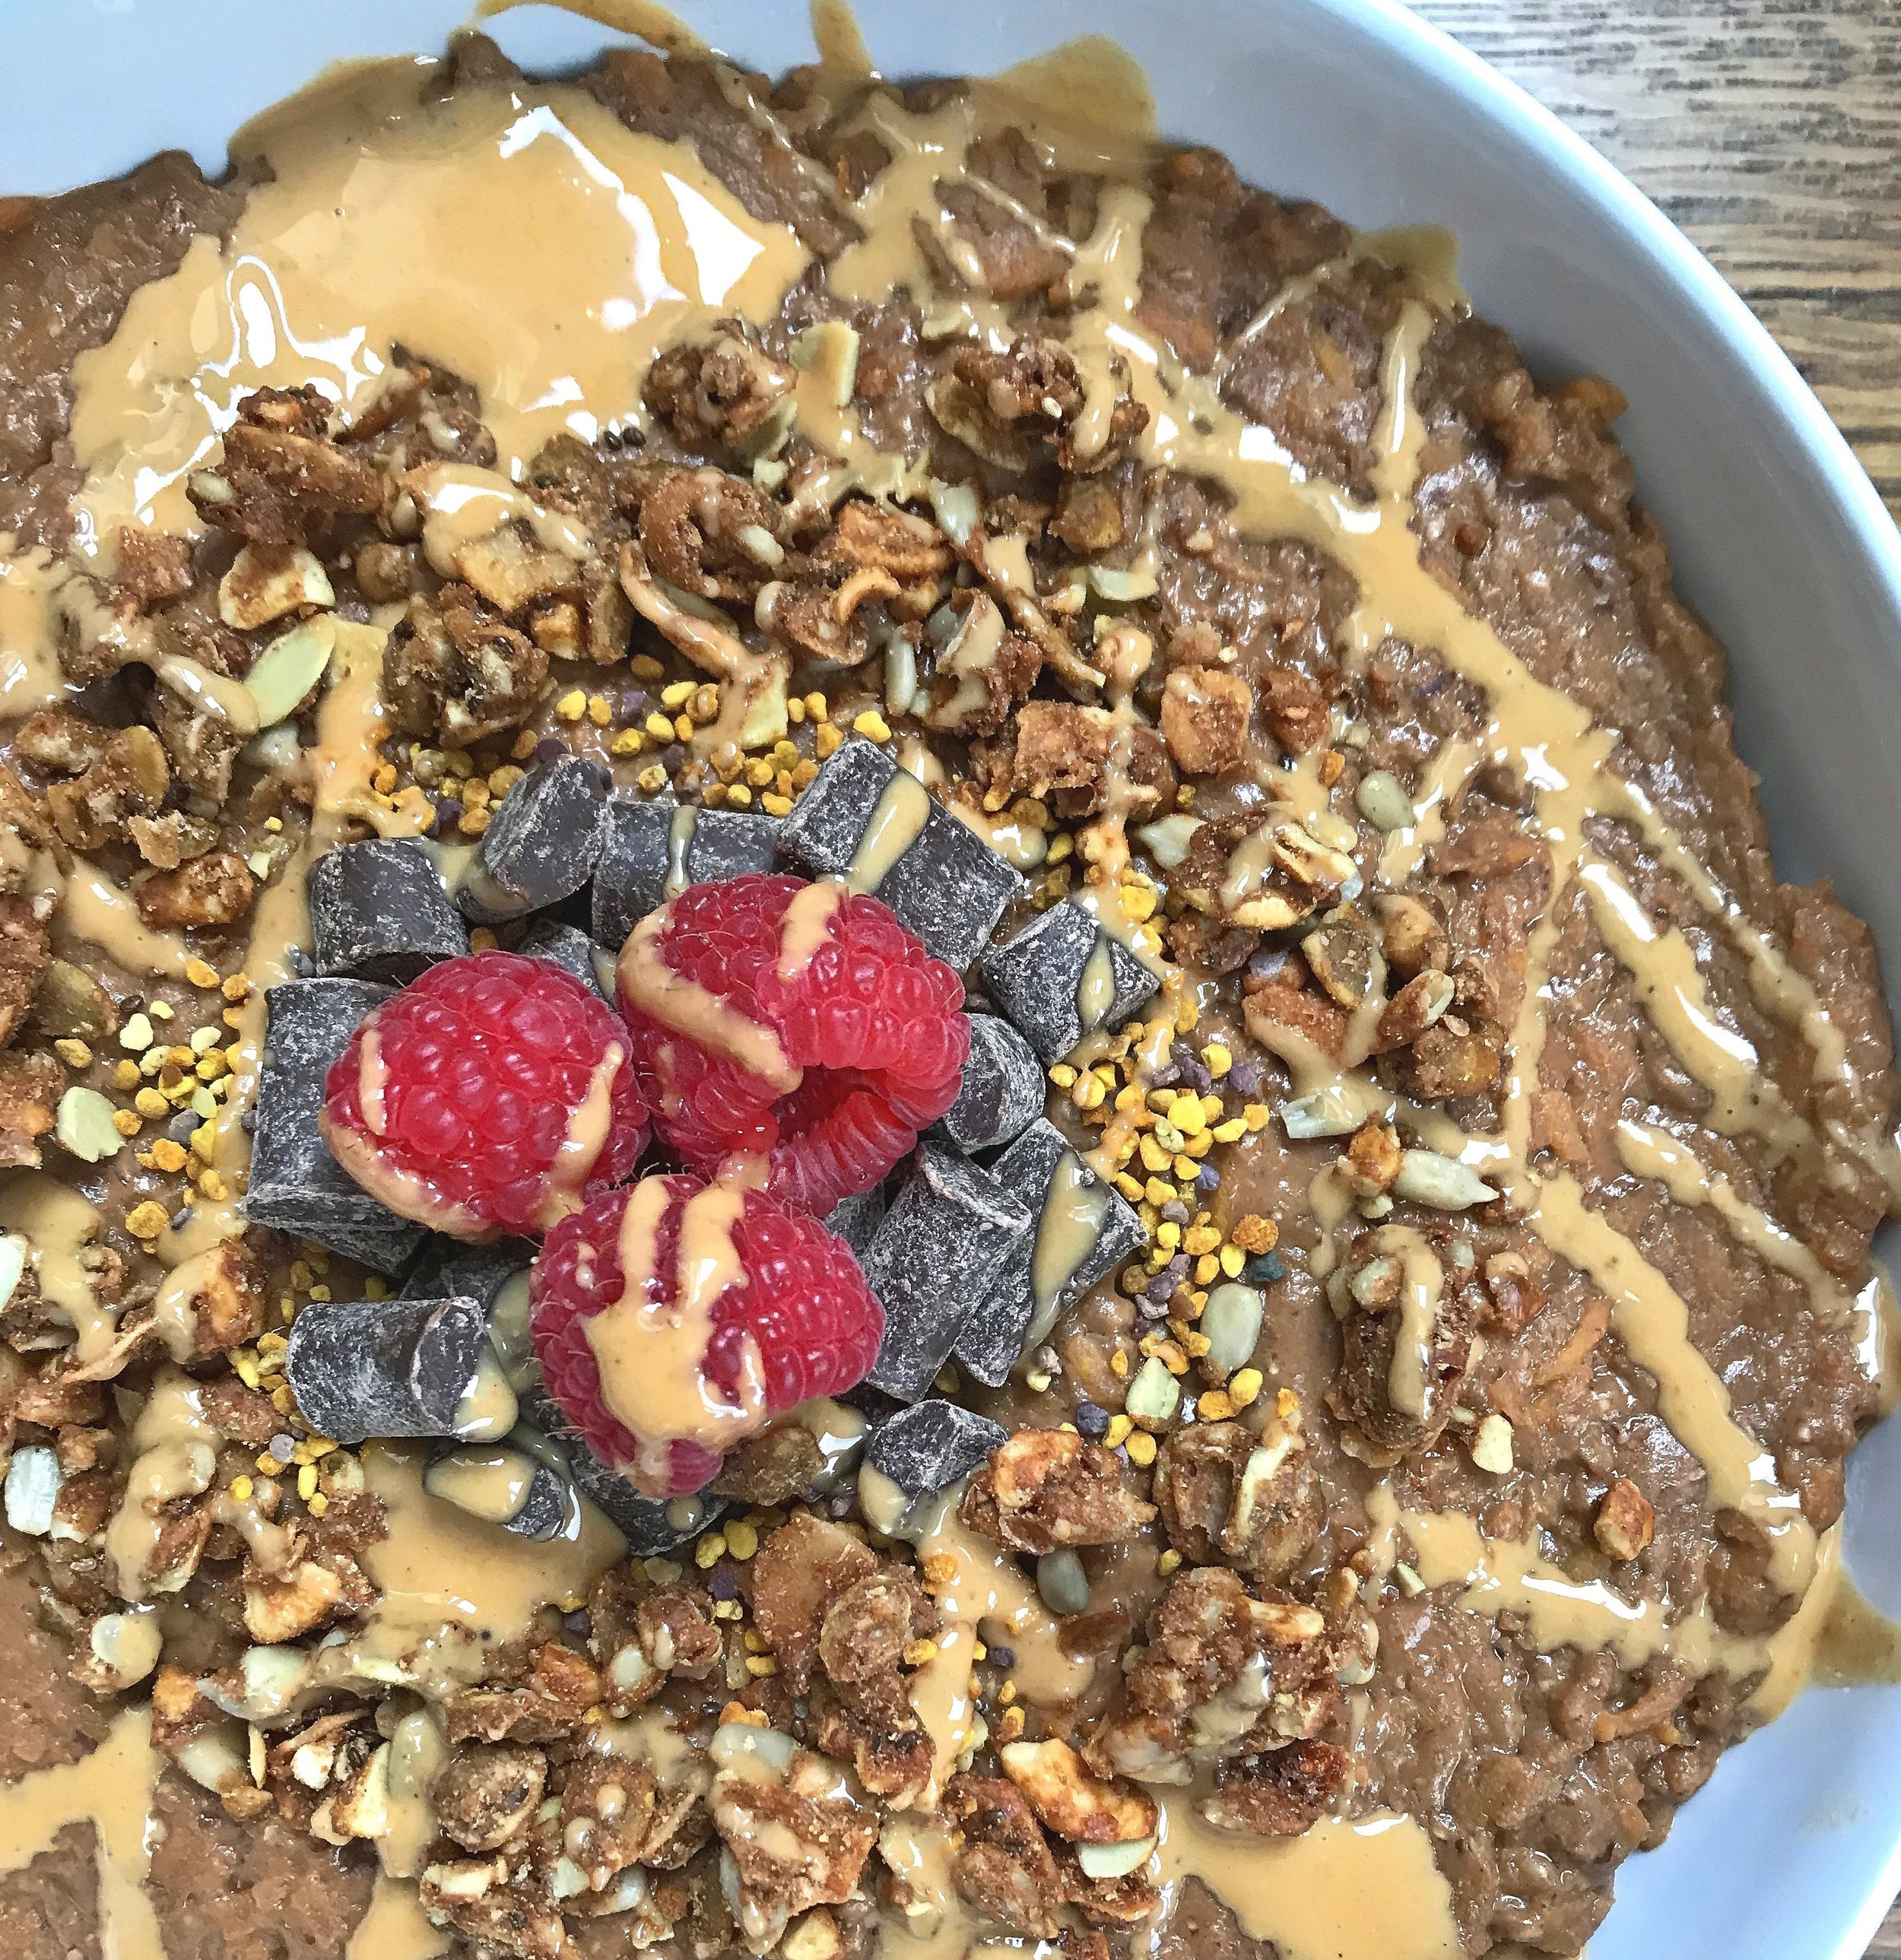 Topped with grain-free granola, bee pollen, vegan chocolate chunks, raspberries and melted cashew butter.